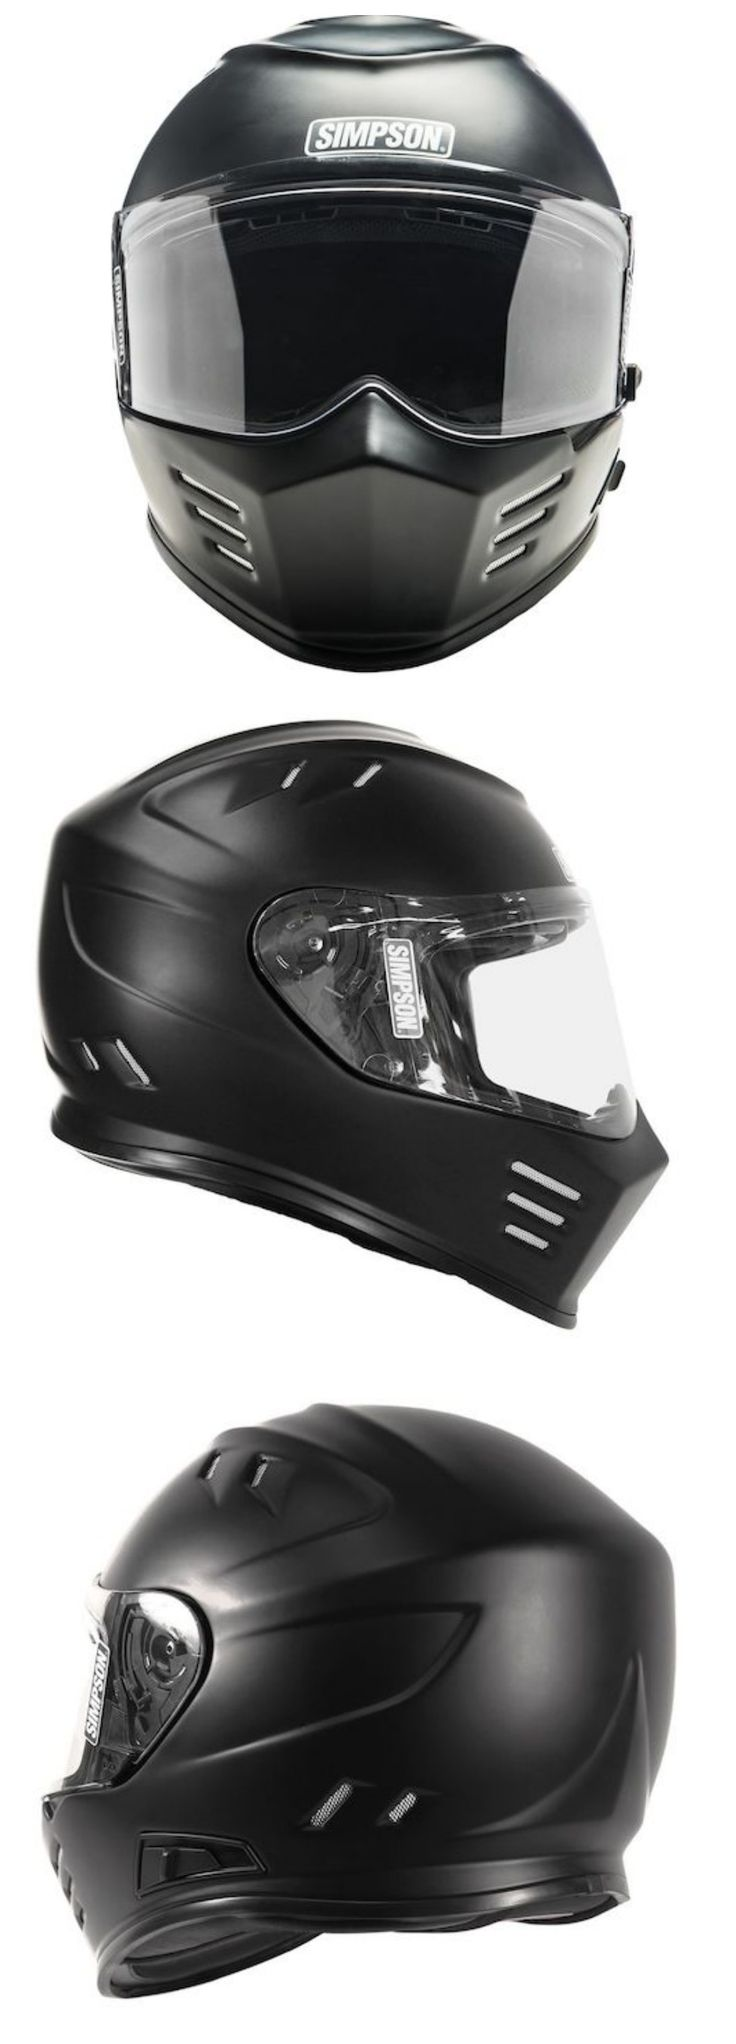 Simpson Ghost Bandit Helmet Review – A Guide To Deciding If This Is The Right…